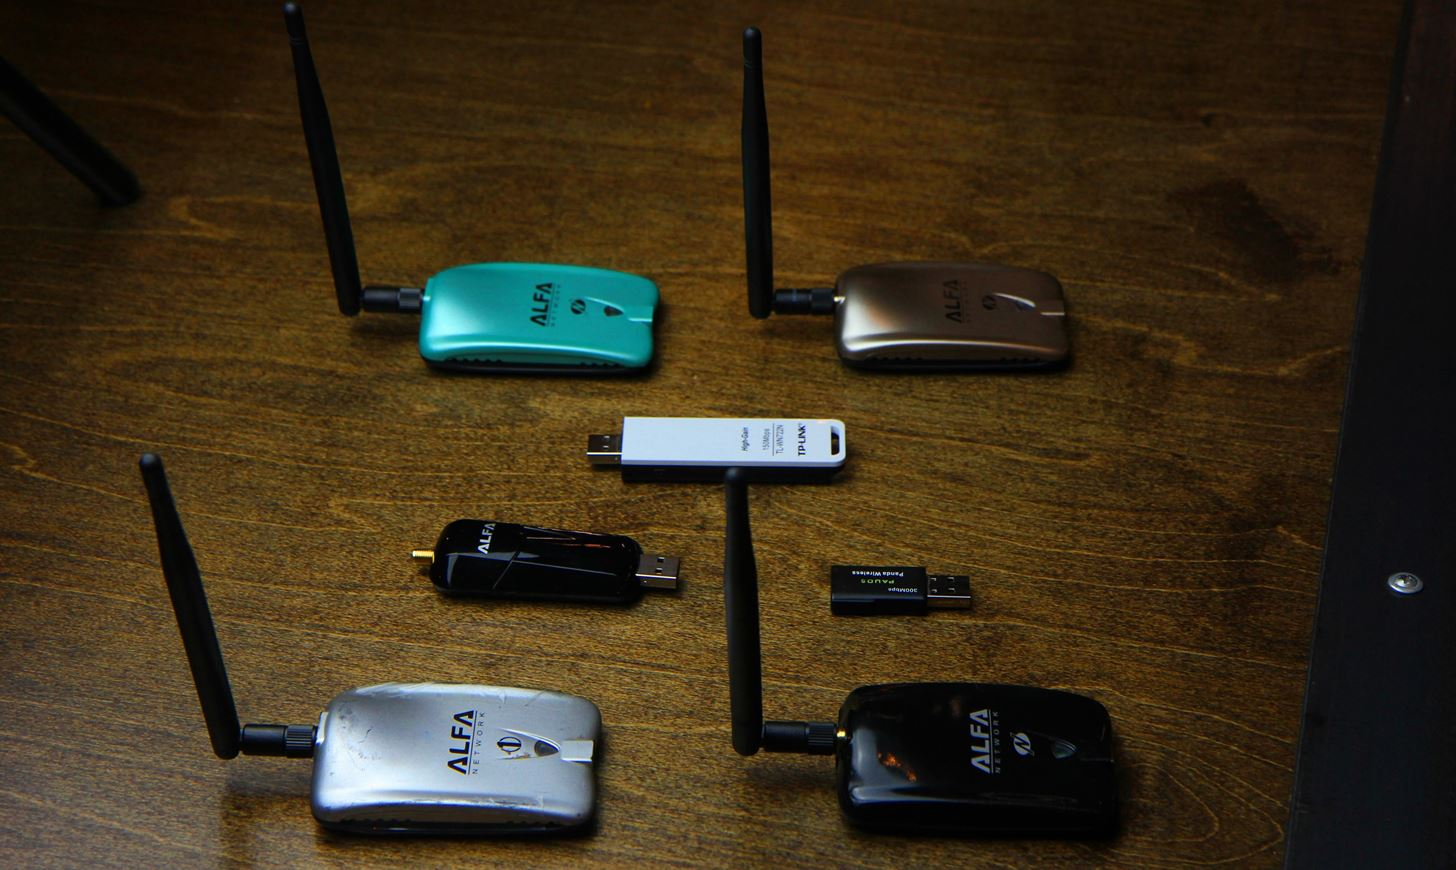 Buy the Best Wireless Network Adapter for Wi-Fi Hacking in 2017